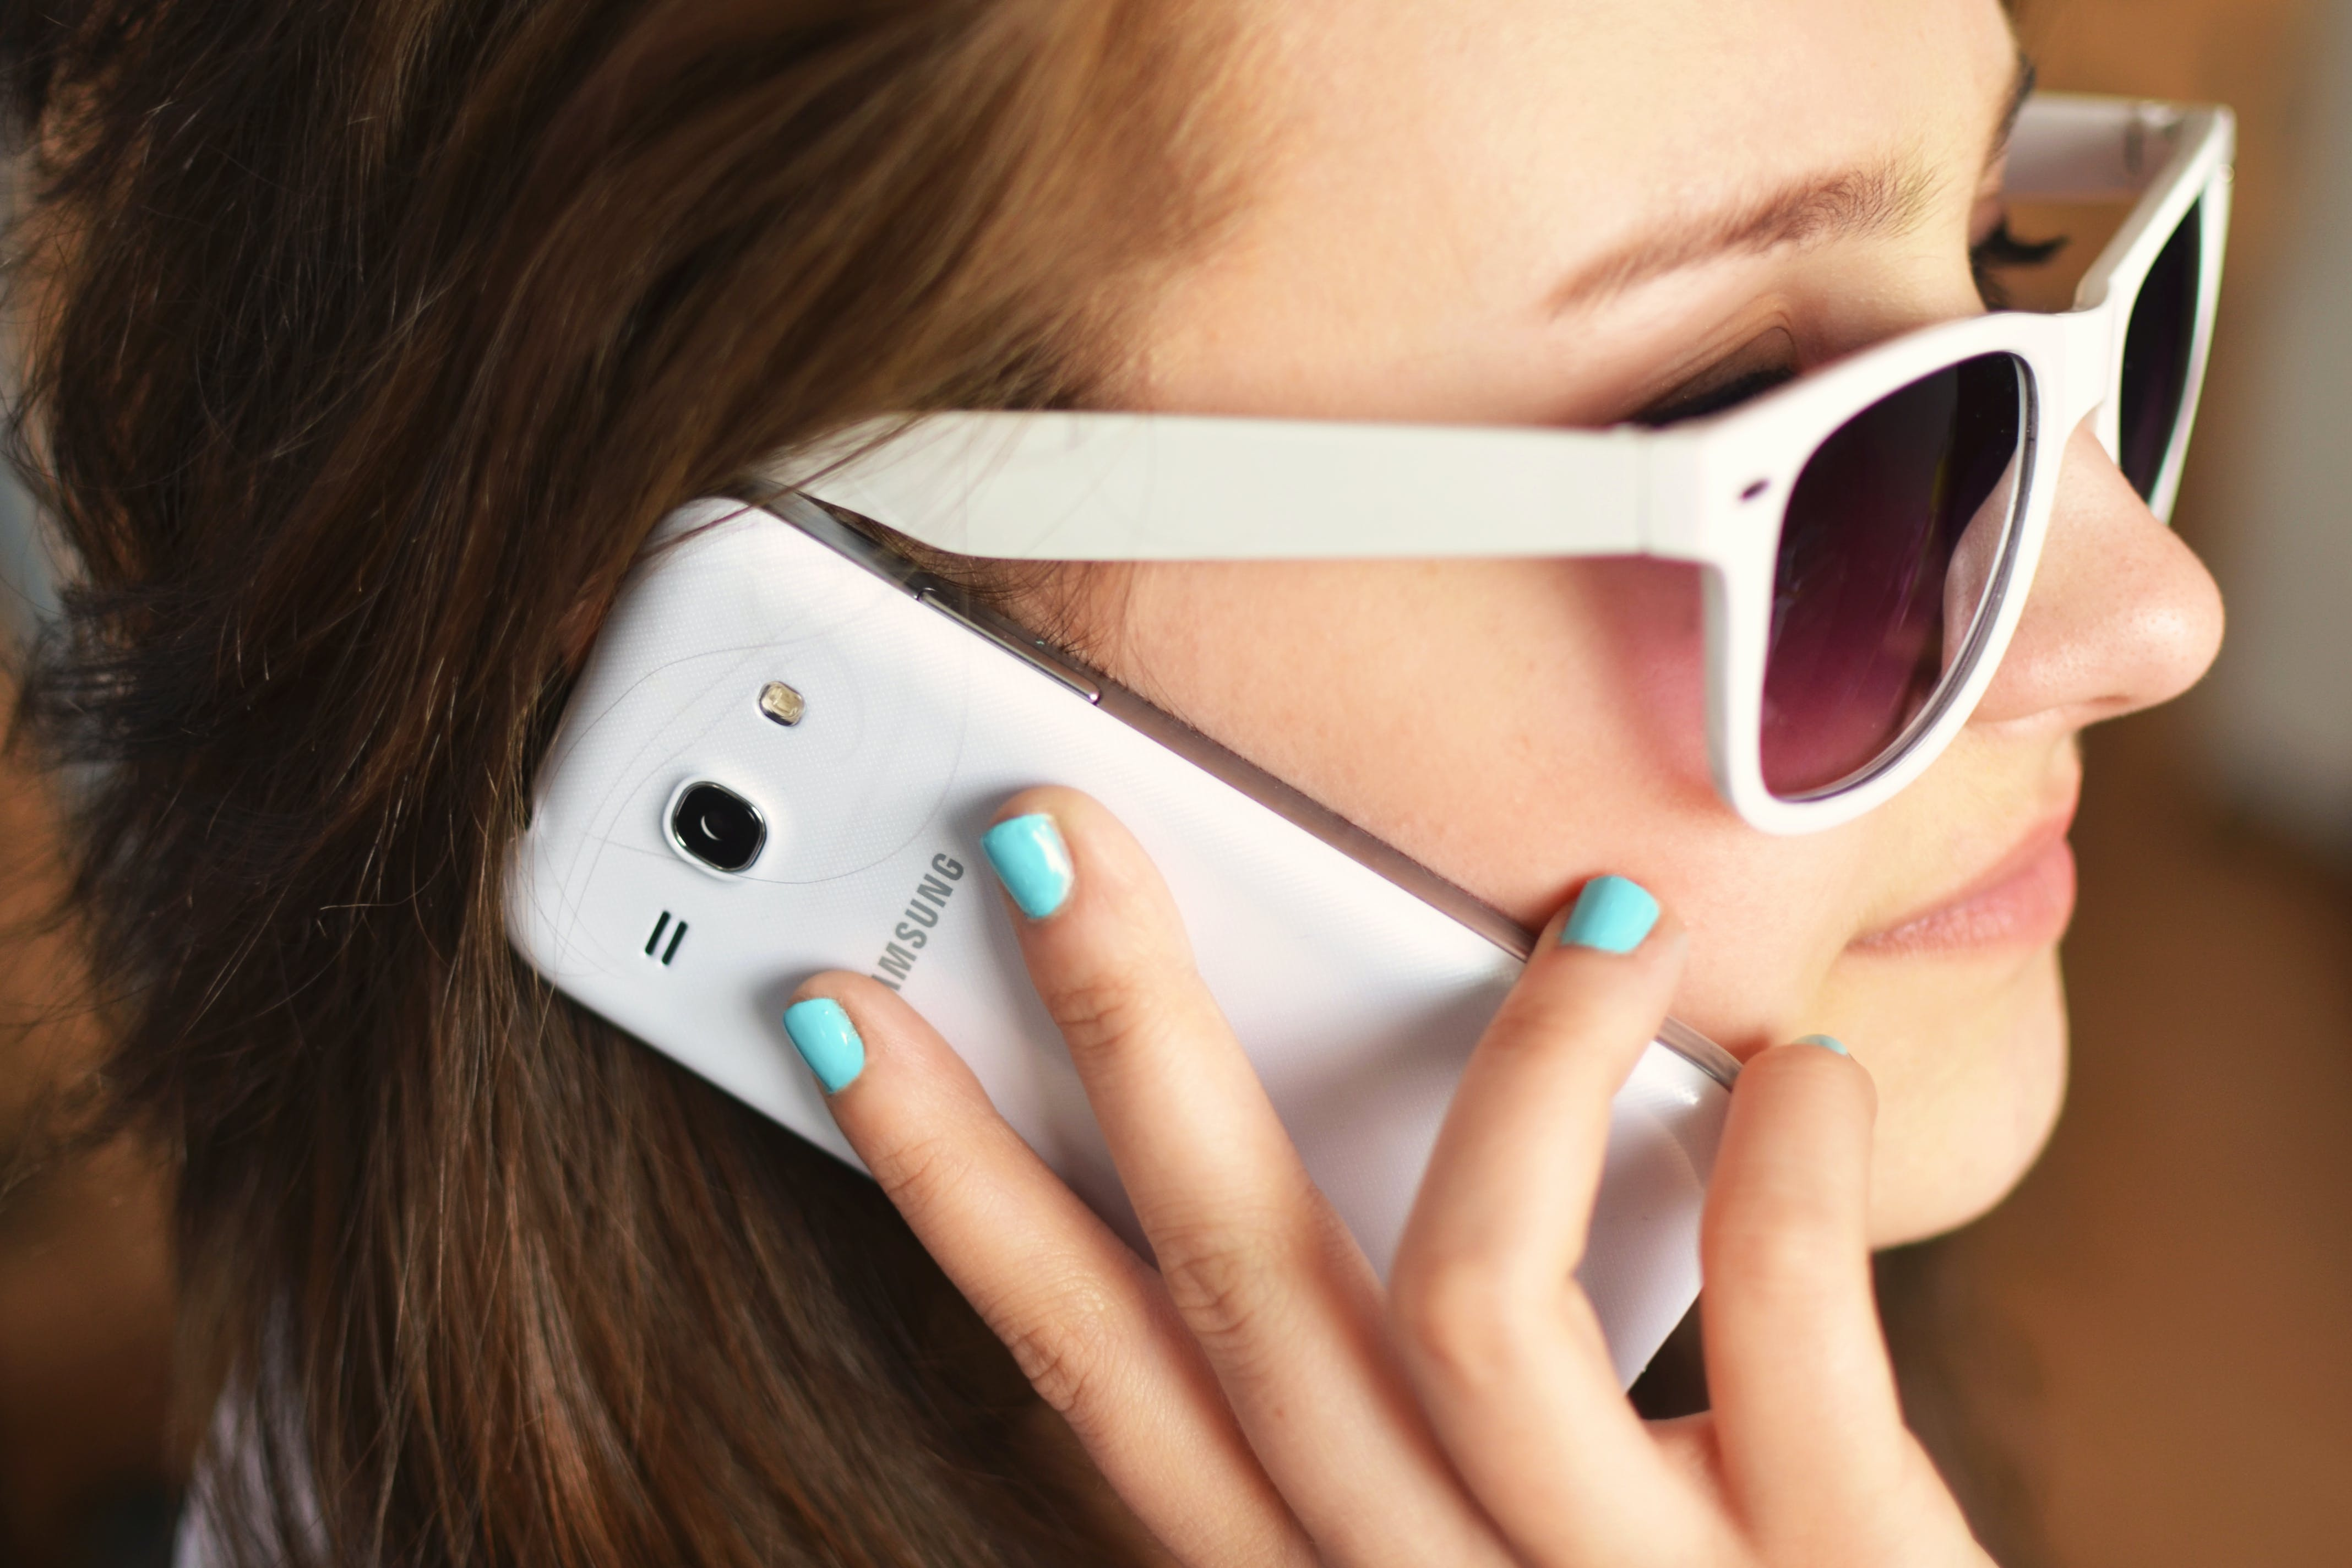 Smiling Woman Wearing Sunglasses While Talking on White Samsung Smartphone